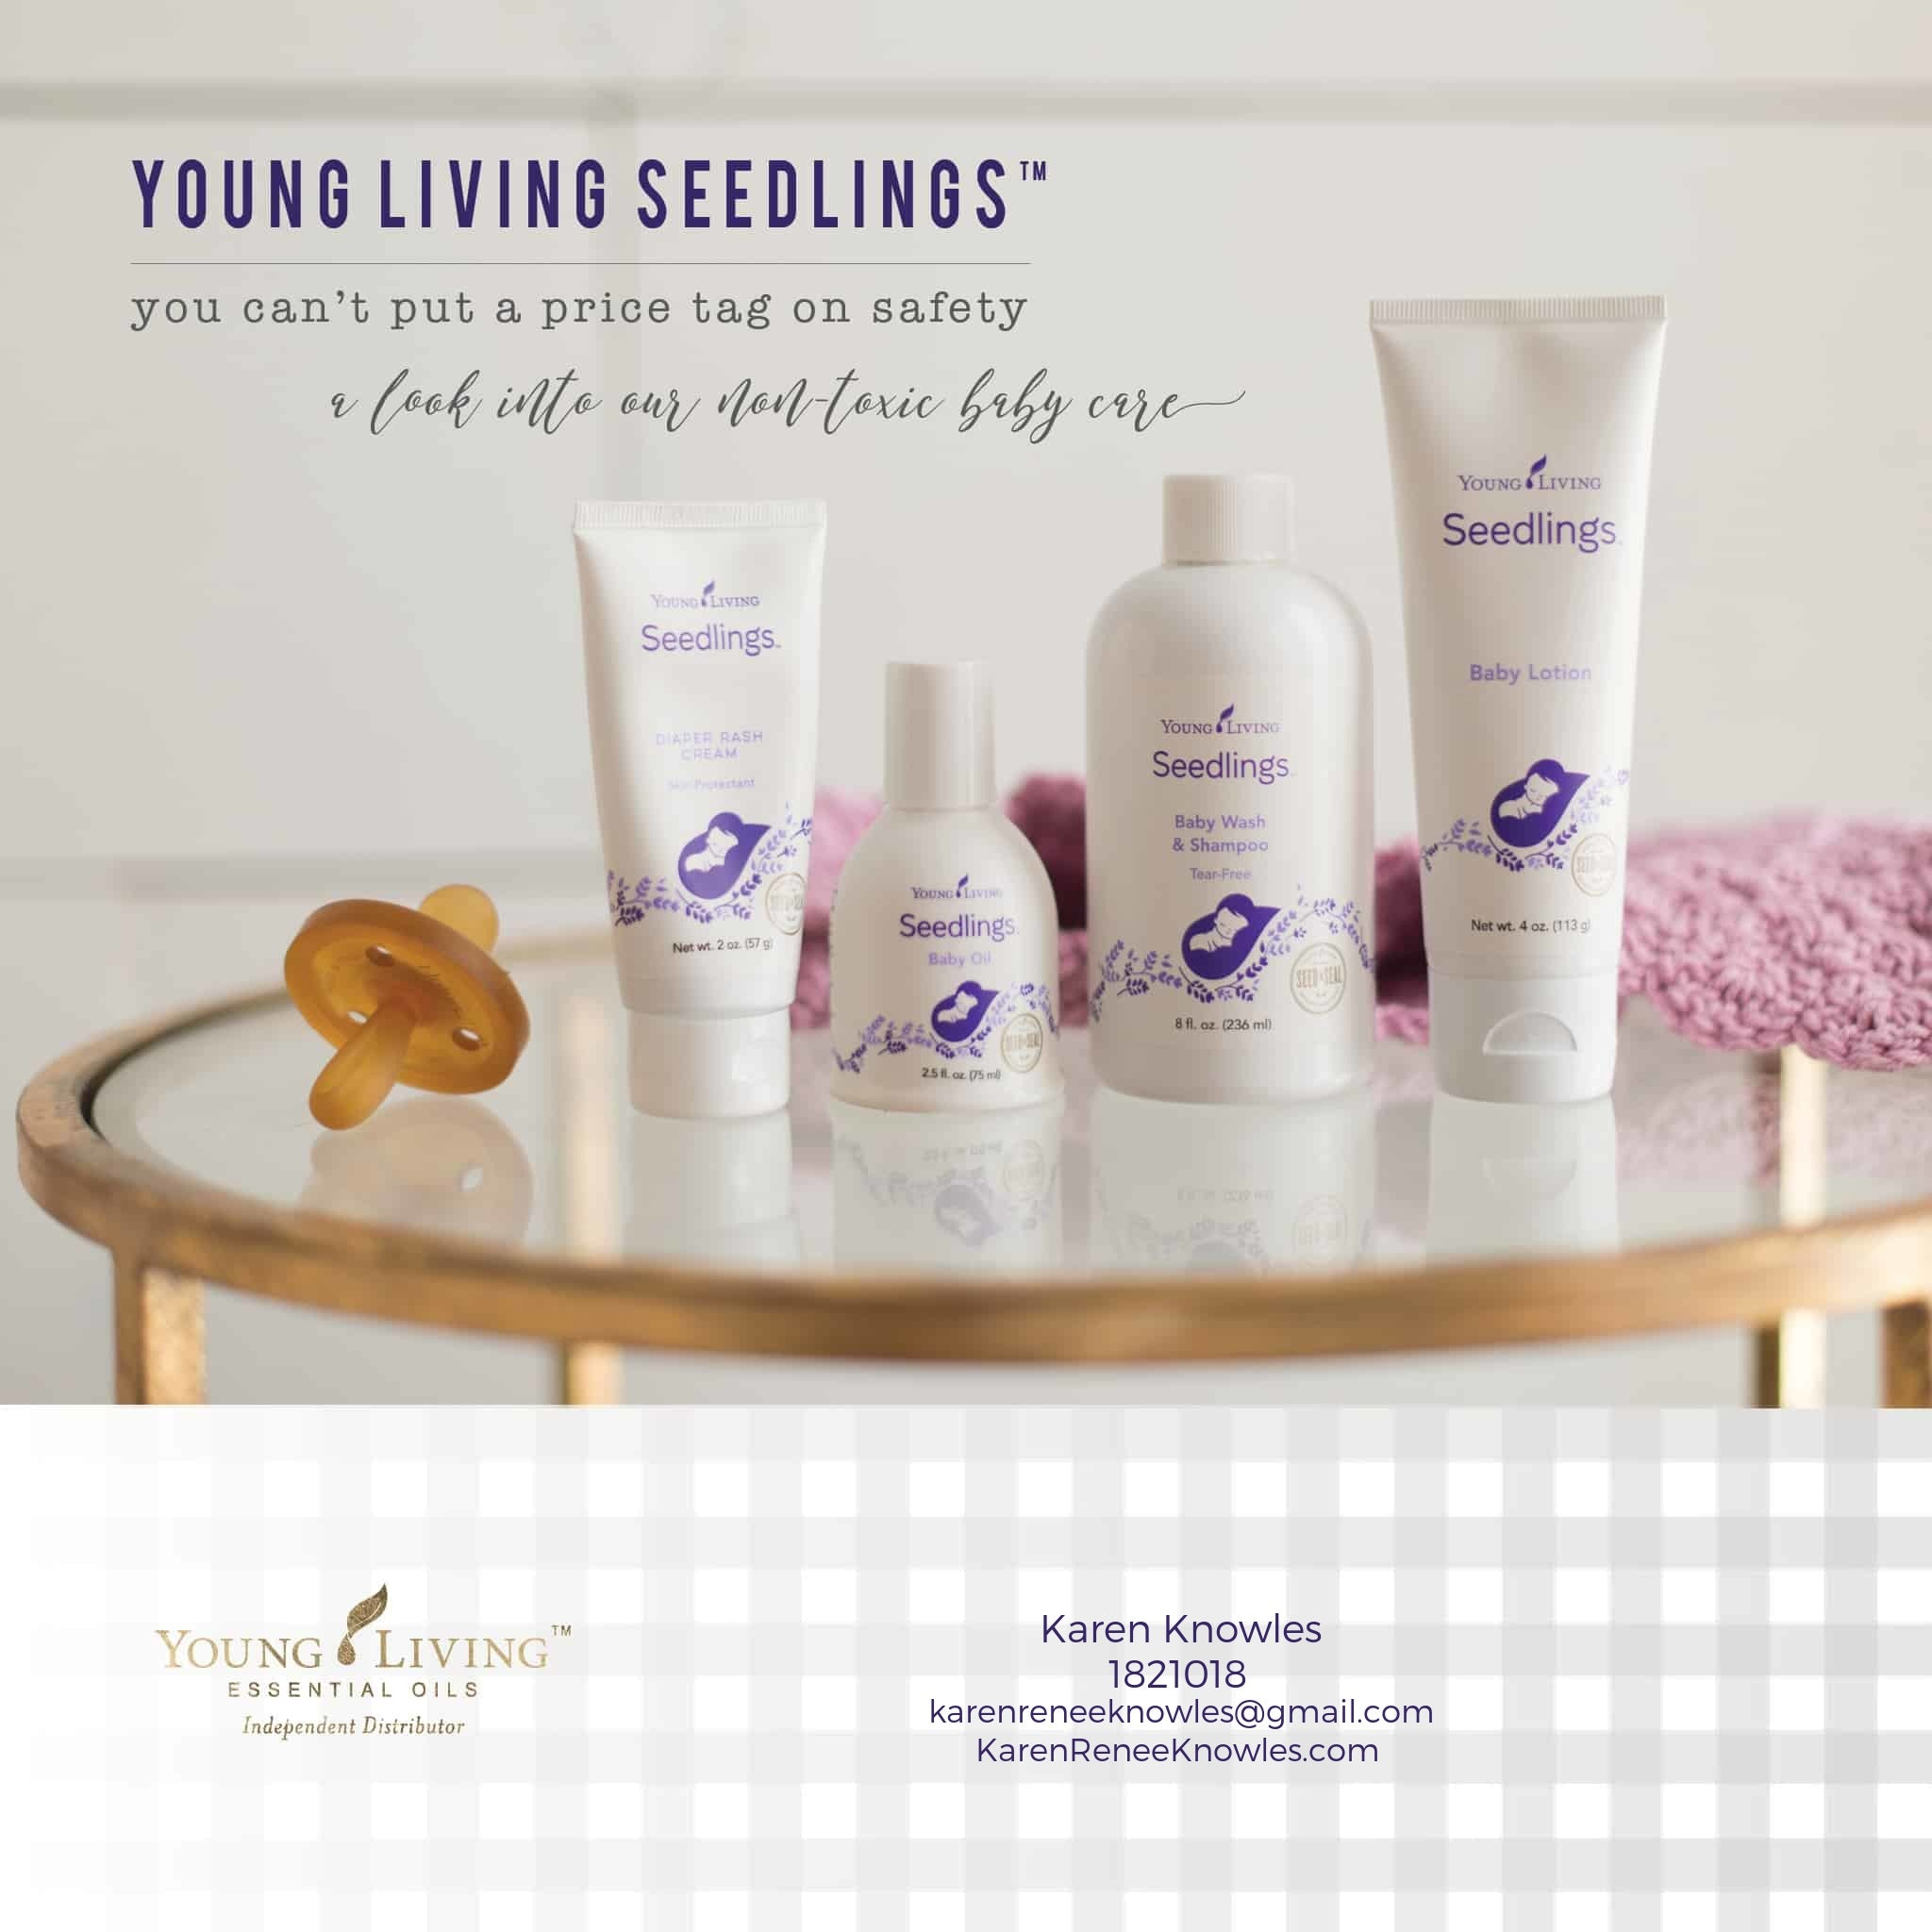 Seedlings- Non Toxic Baby Care Exclusively by Young Living